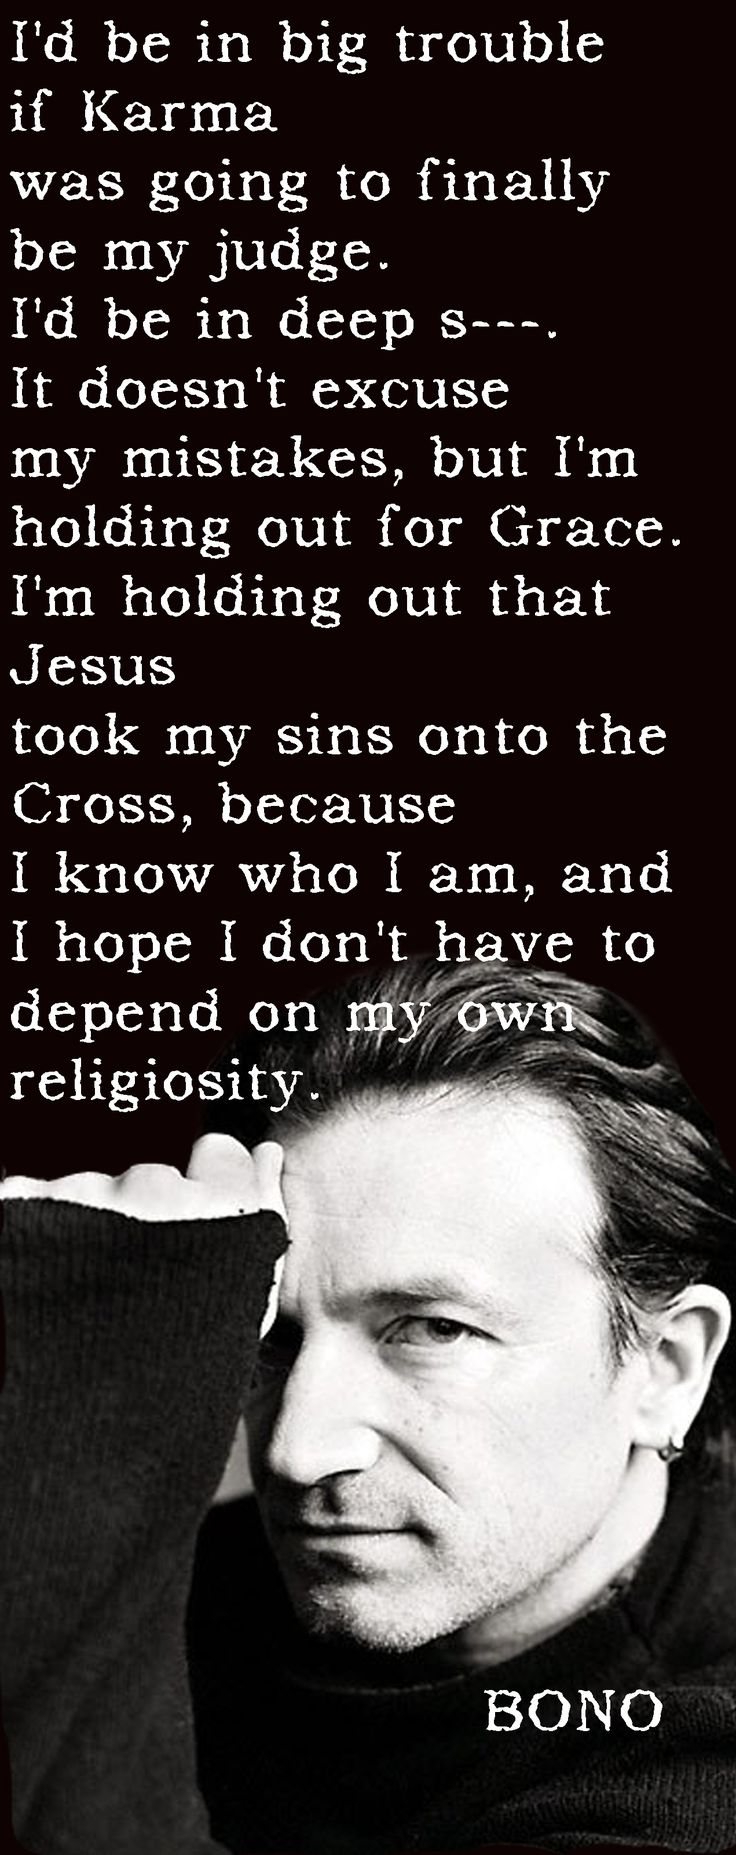 Bono quote on faith. Need to meet him some day!